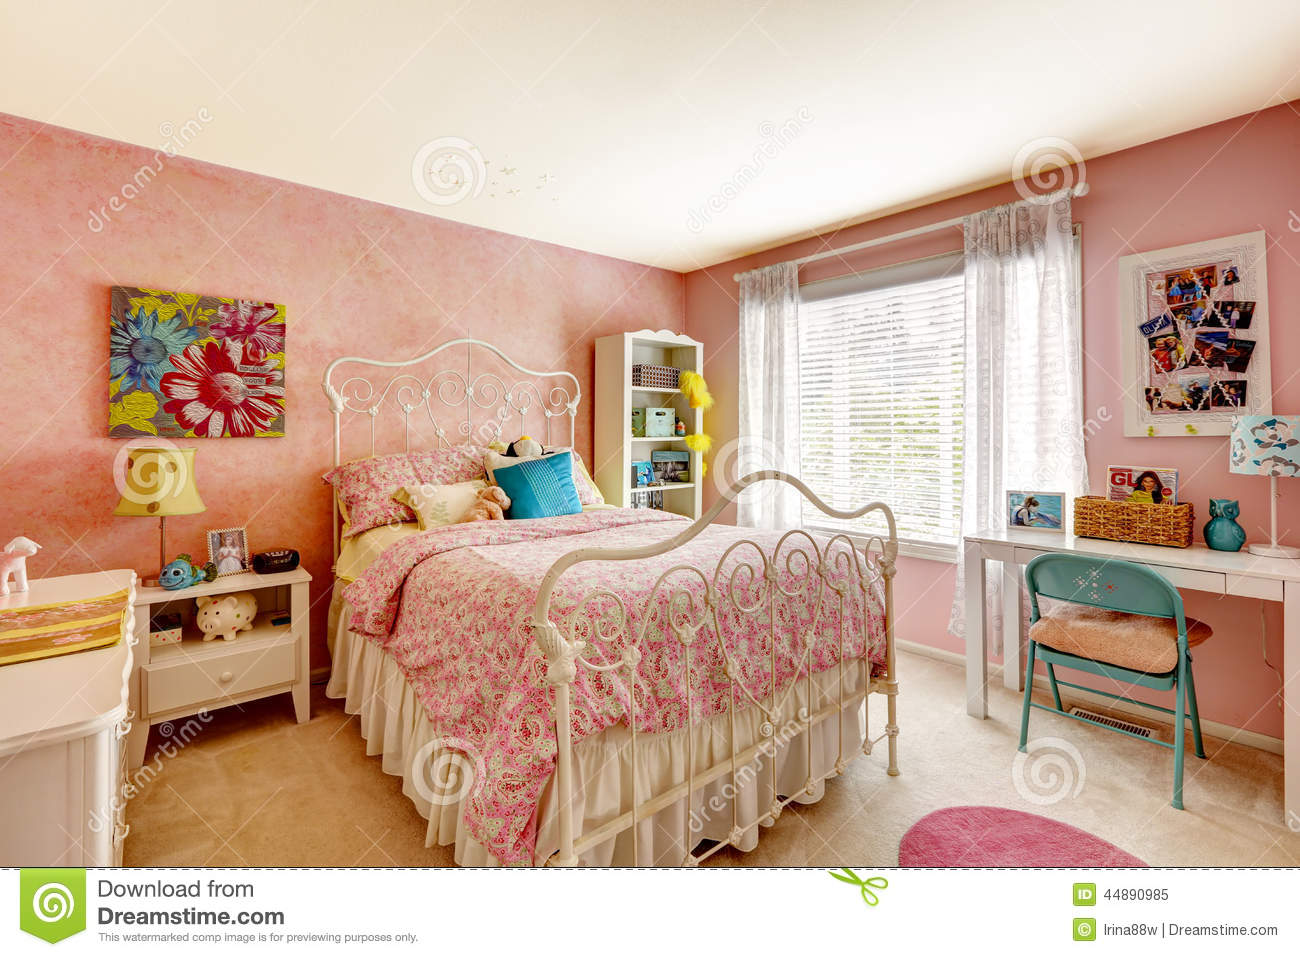 int rieur de chambre coucher dans la couleur rose clair image stock image du id e am ricain. Black Bedroom Furniture Sets. Home Design Ideas